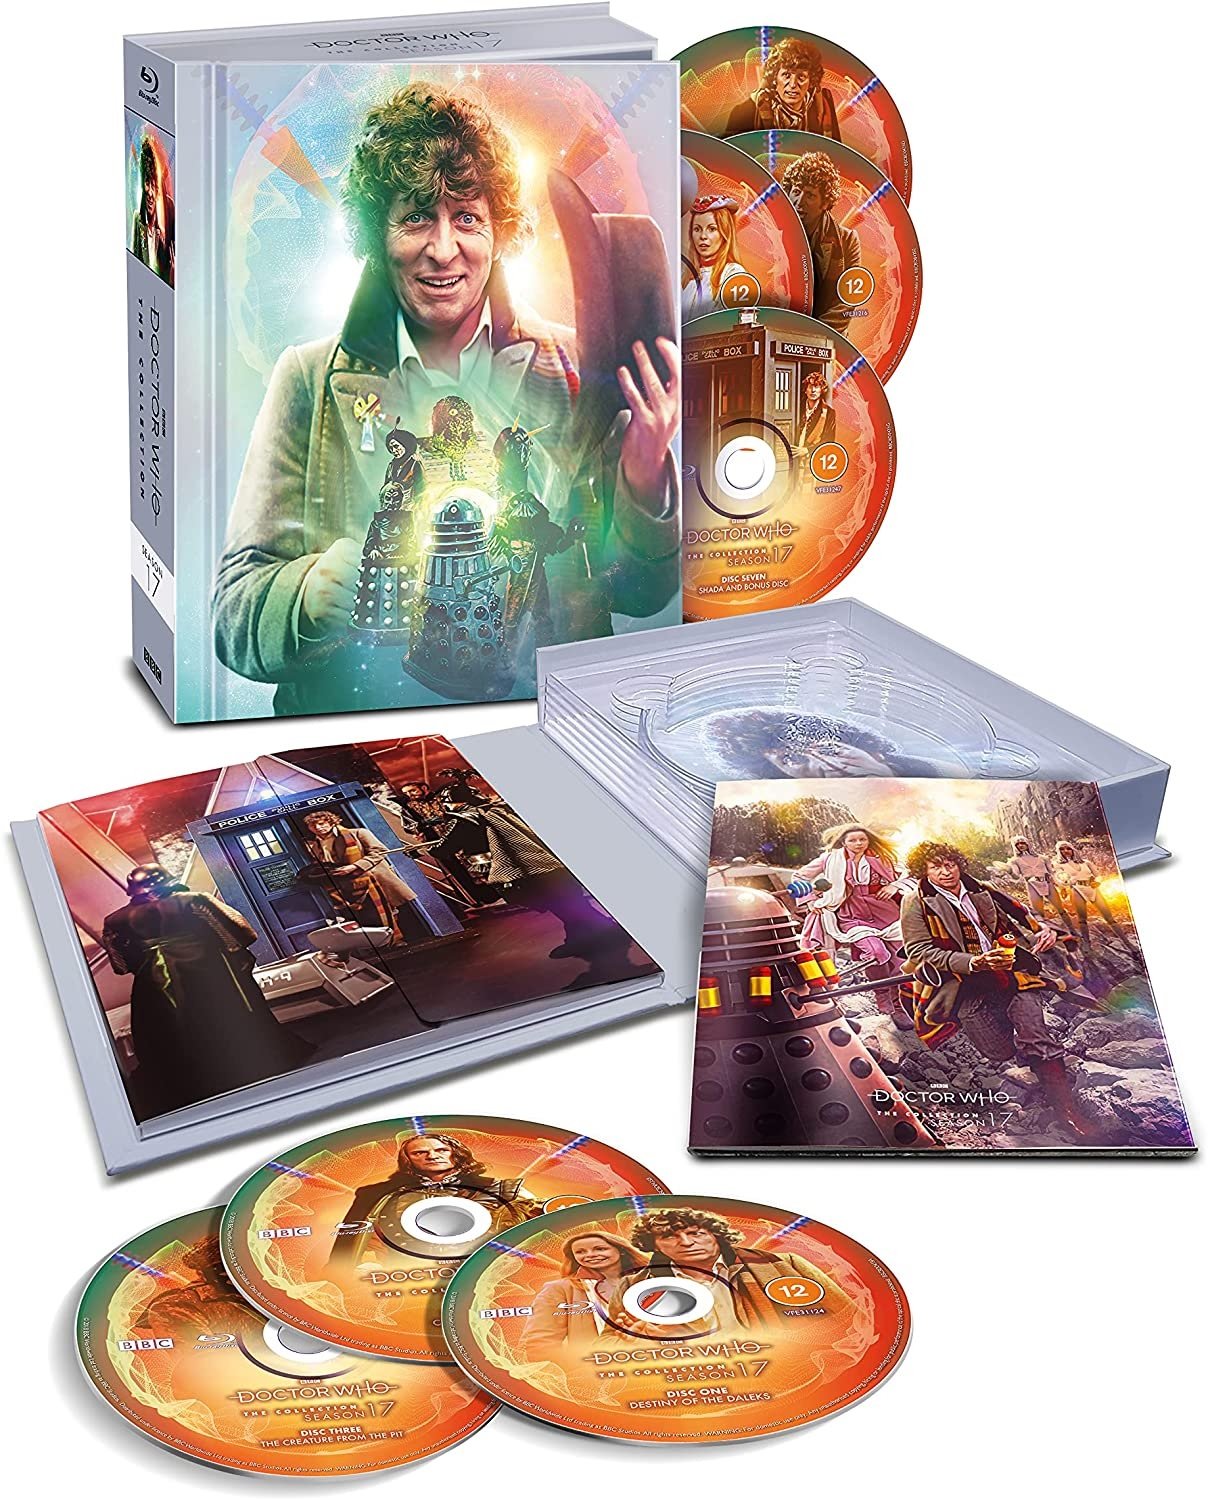 Coming Soon to Blu-ray: Doctor Who The Collection — Season 17